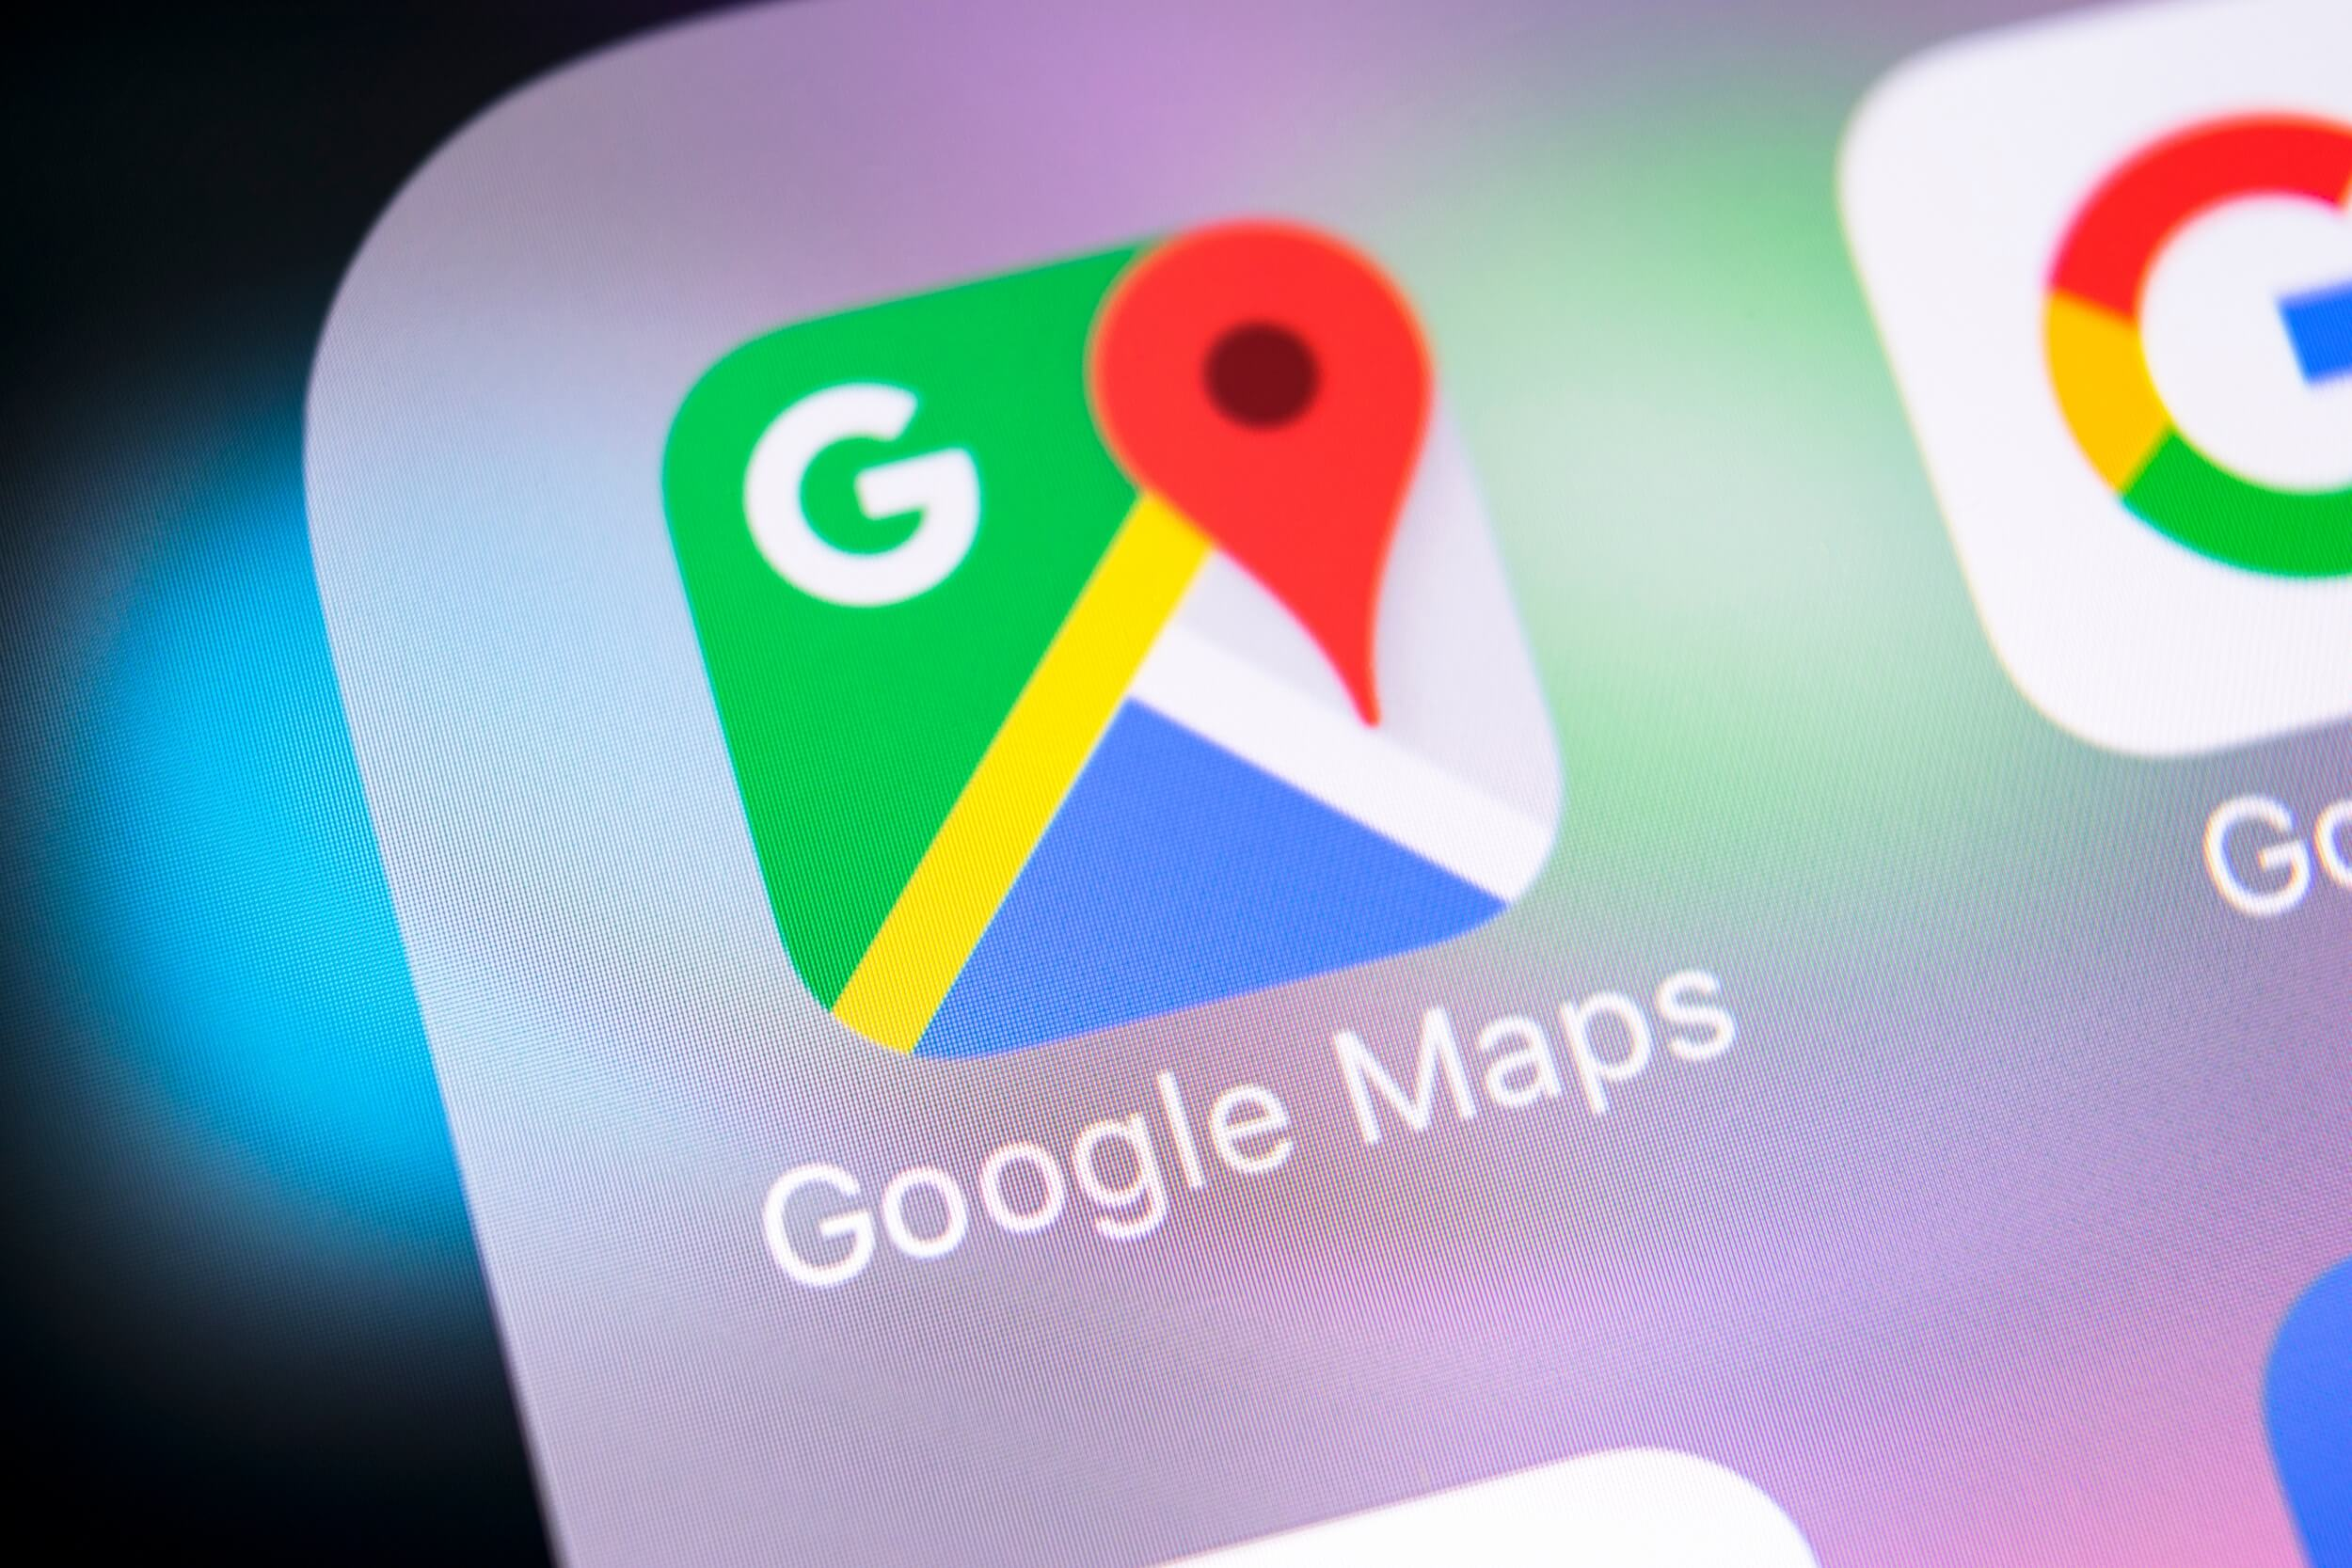 Google Maps is getting more detailed and more colorful